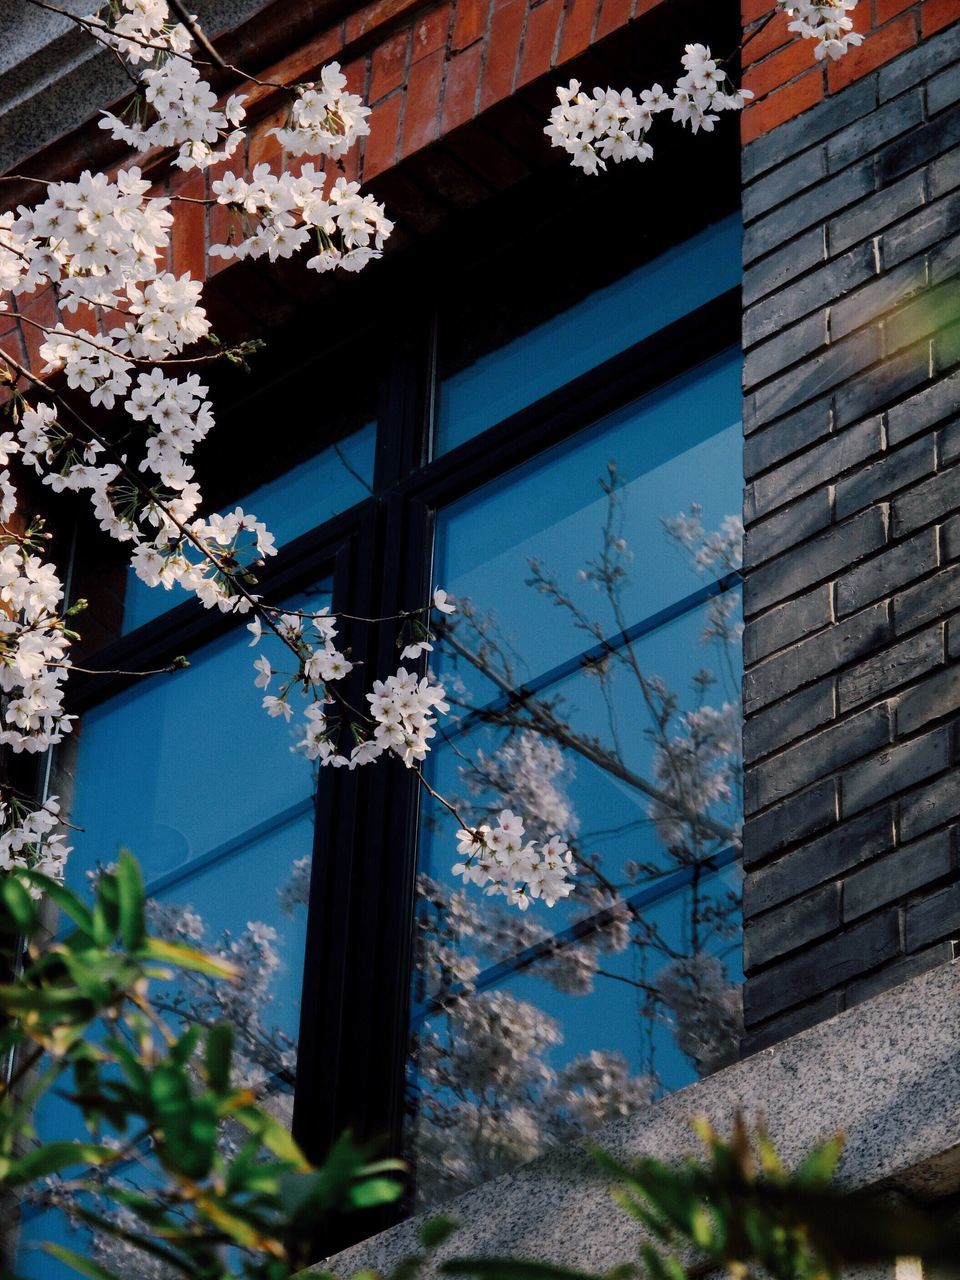 Low Angle View Of Cherry Blossom Tree By Glass Window